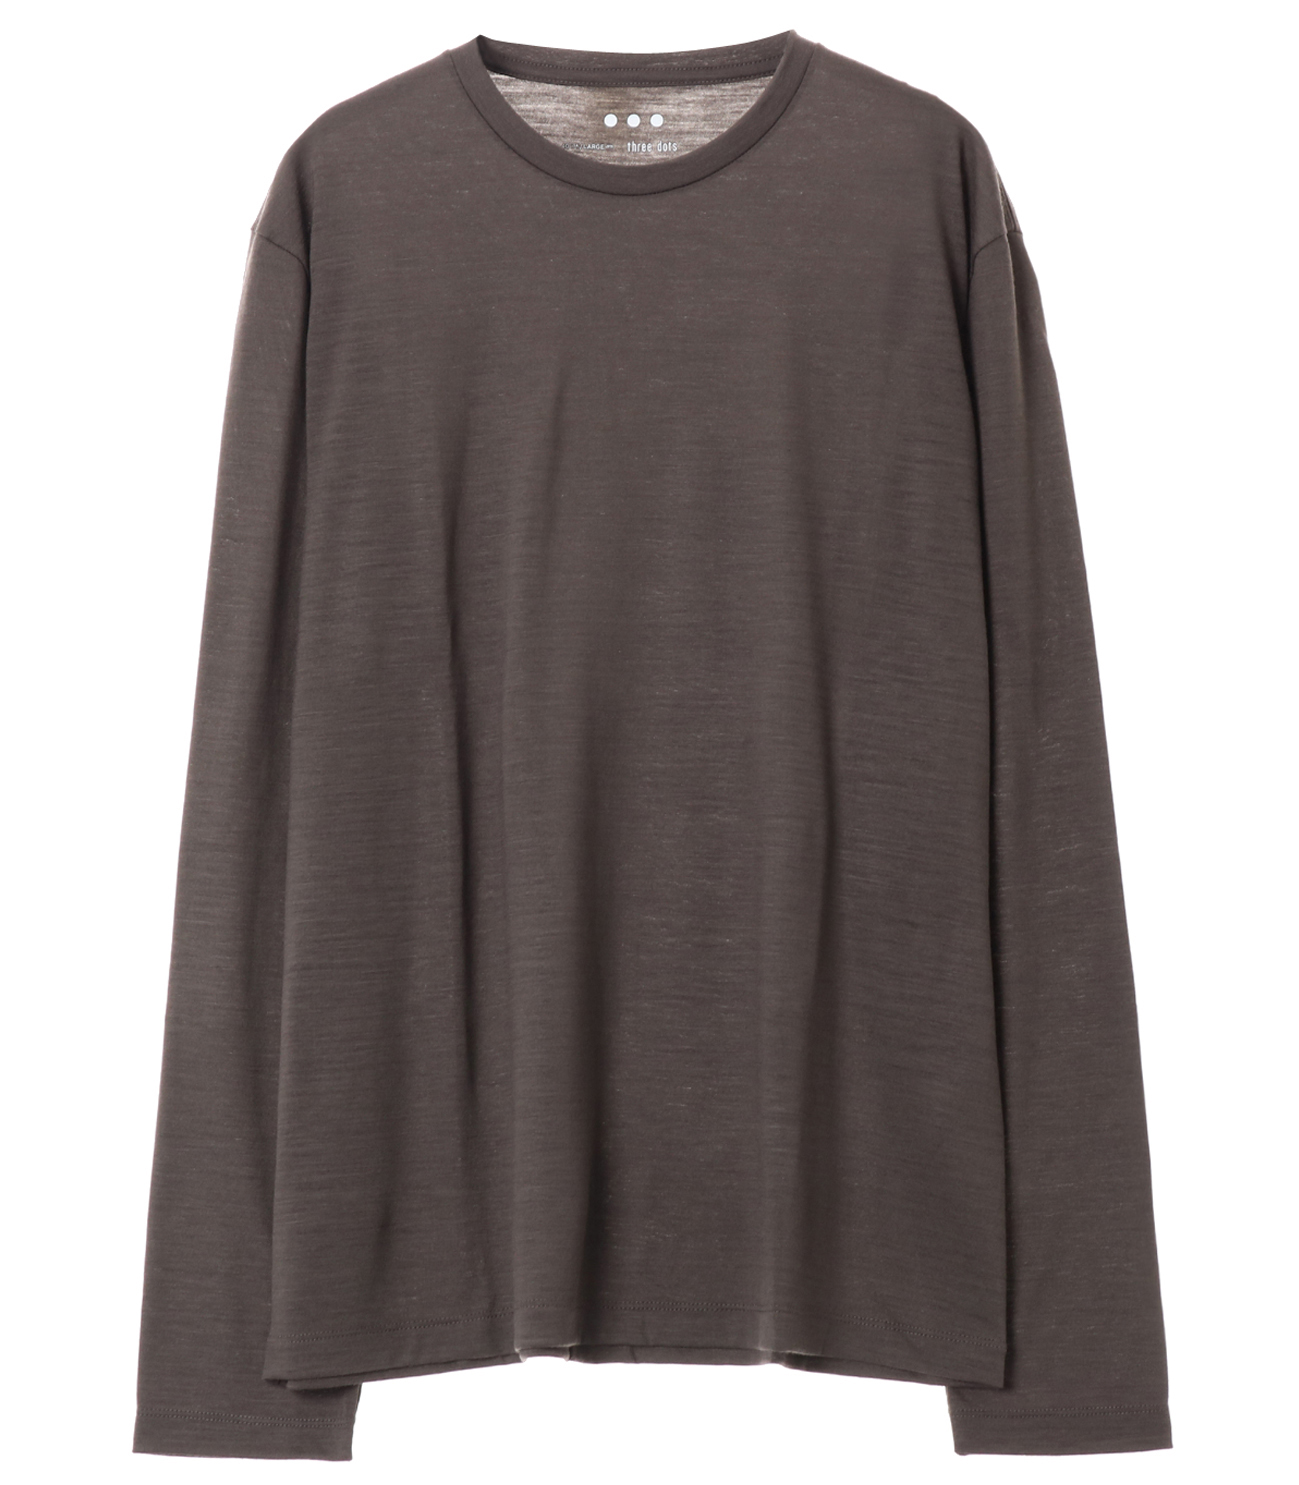 Washable silky dry jersey crewneck 詳細画像 brown 1